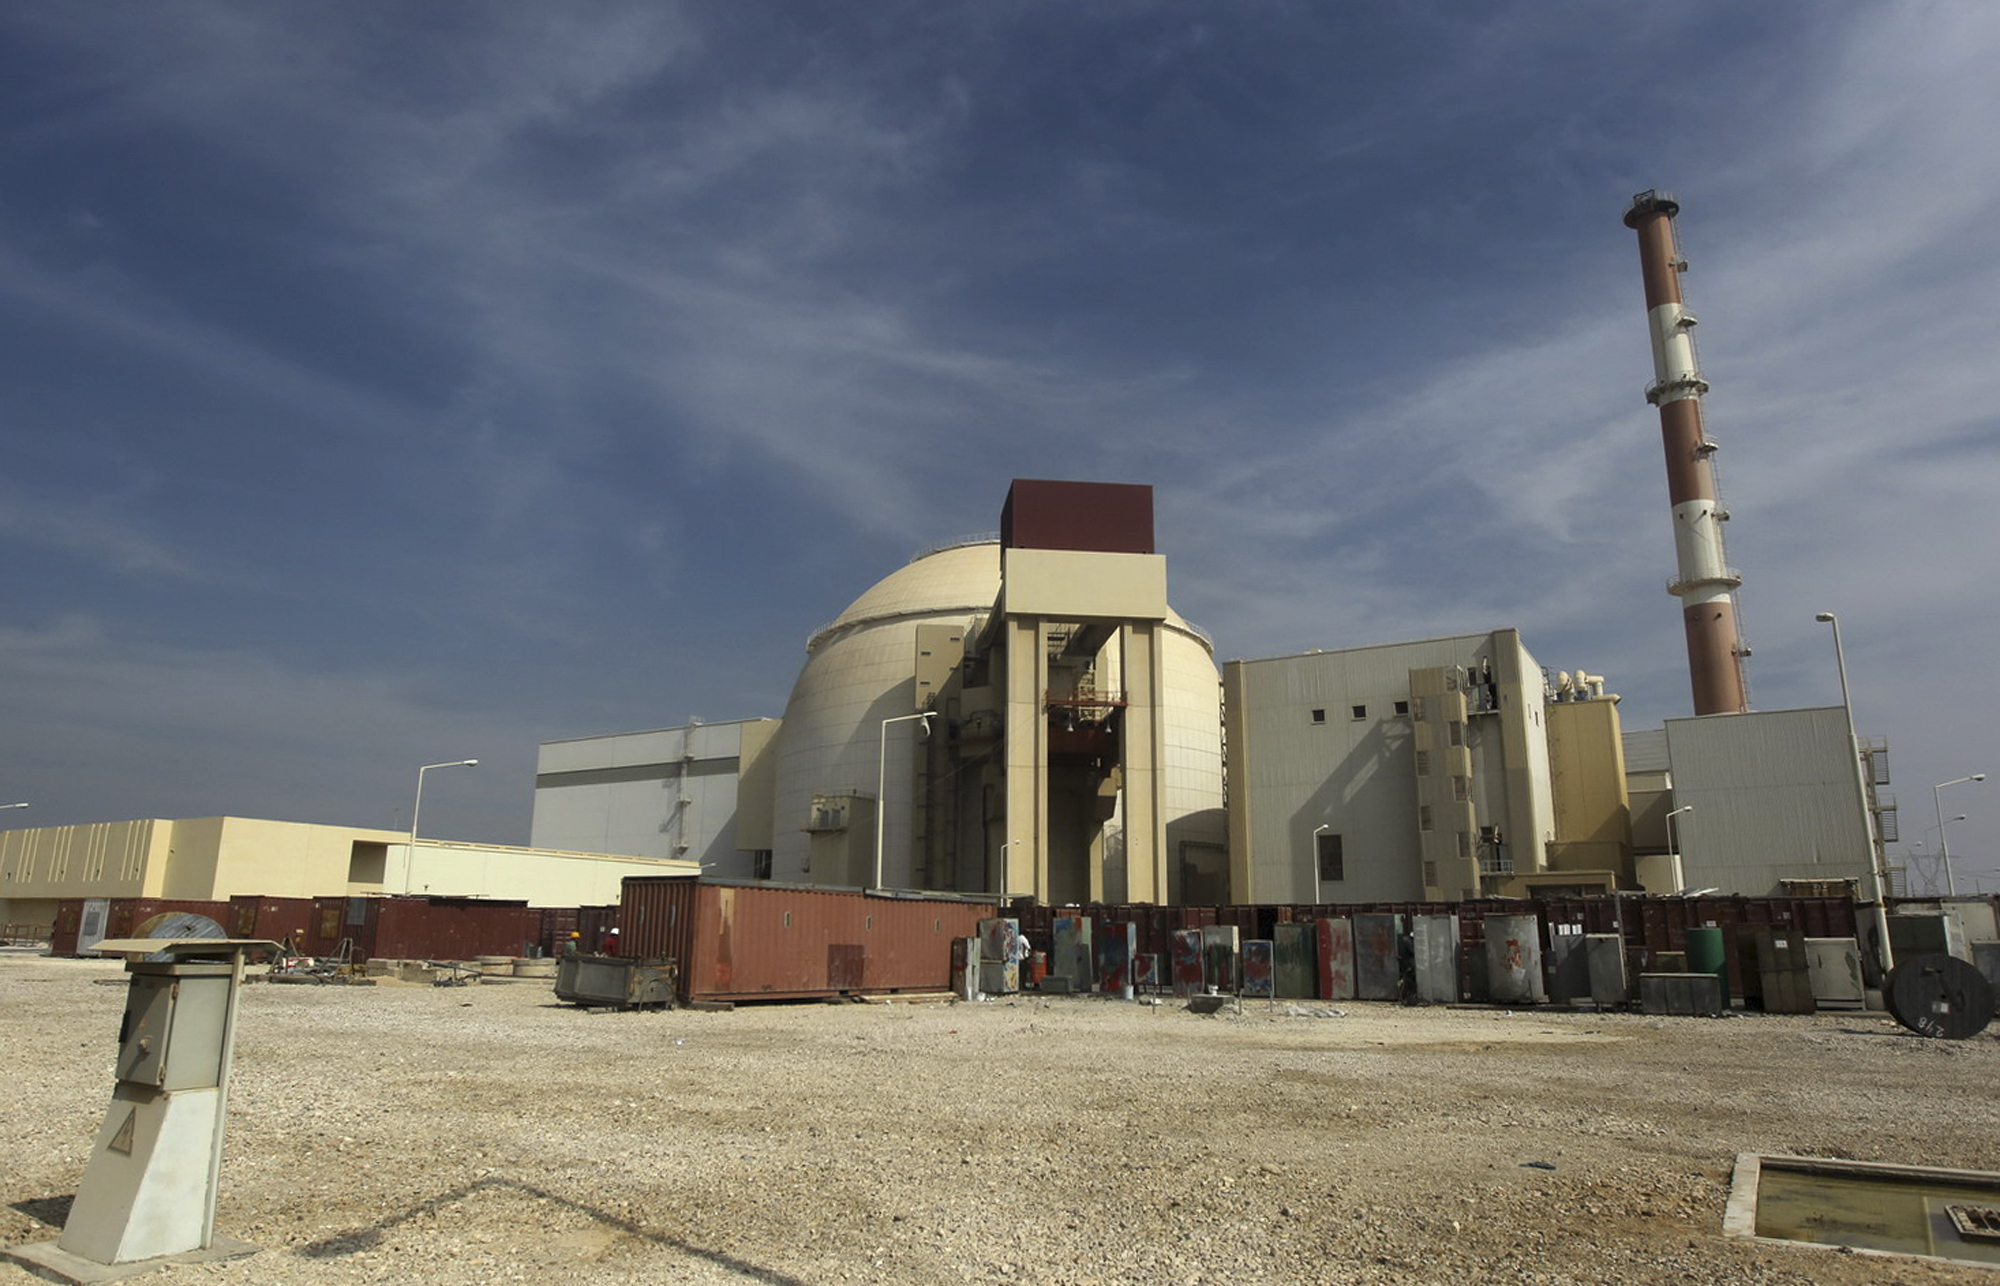 Iran's sole nuclear power plant up and running after closure   The Times of  Israel